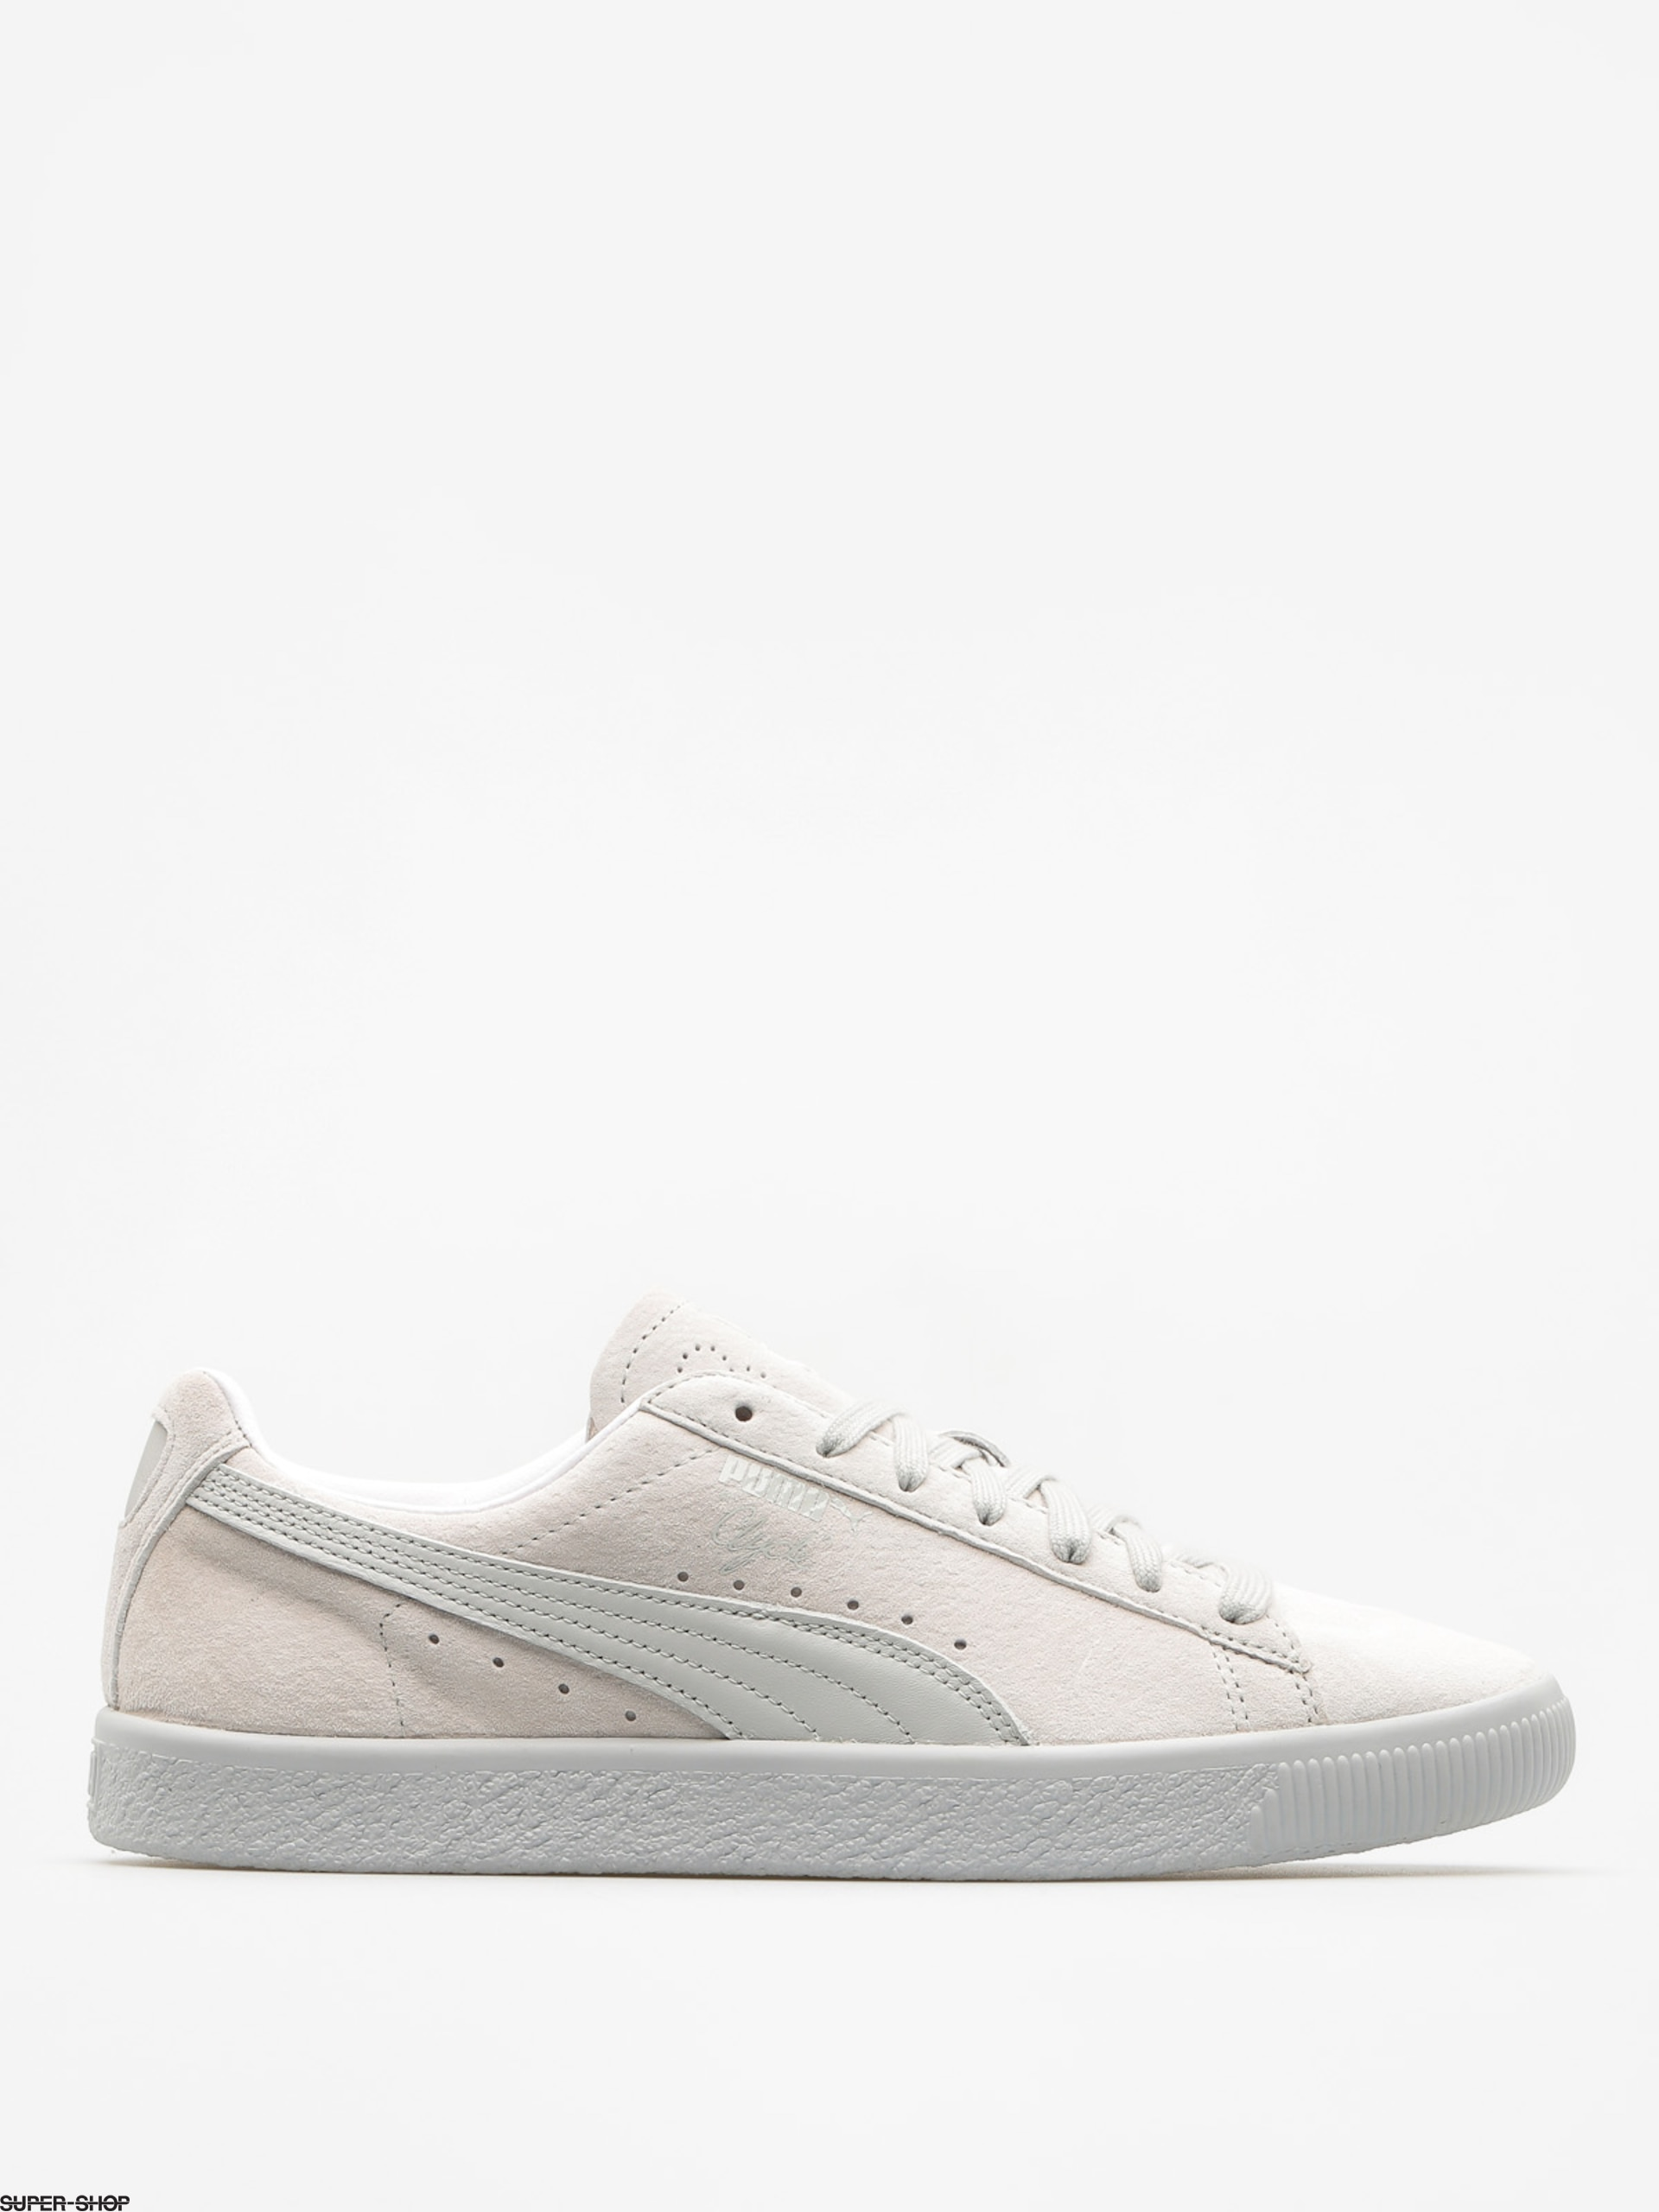 Puma Shoes Clyde Normcore